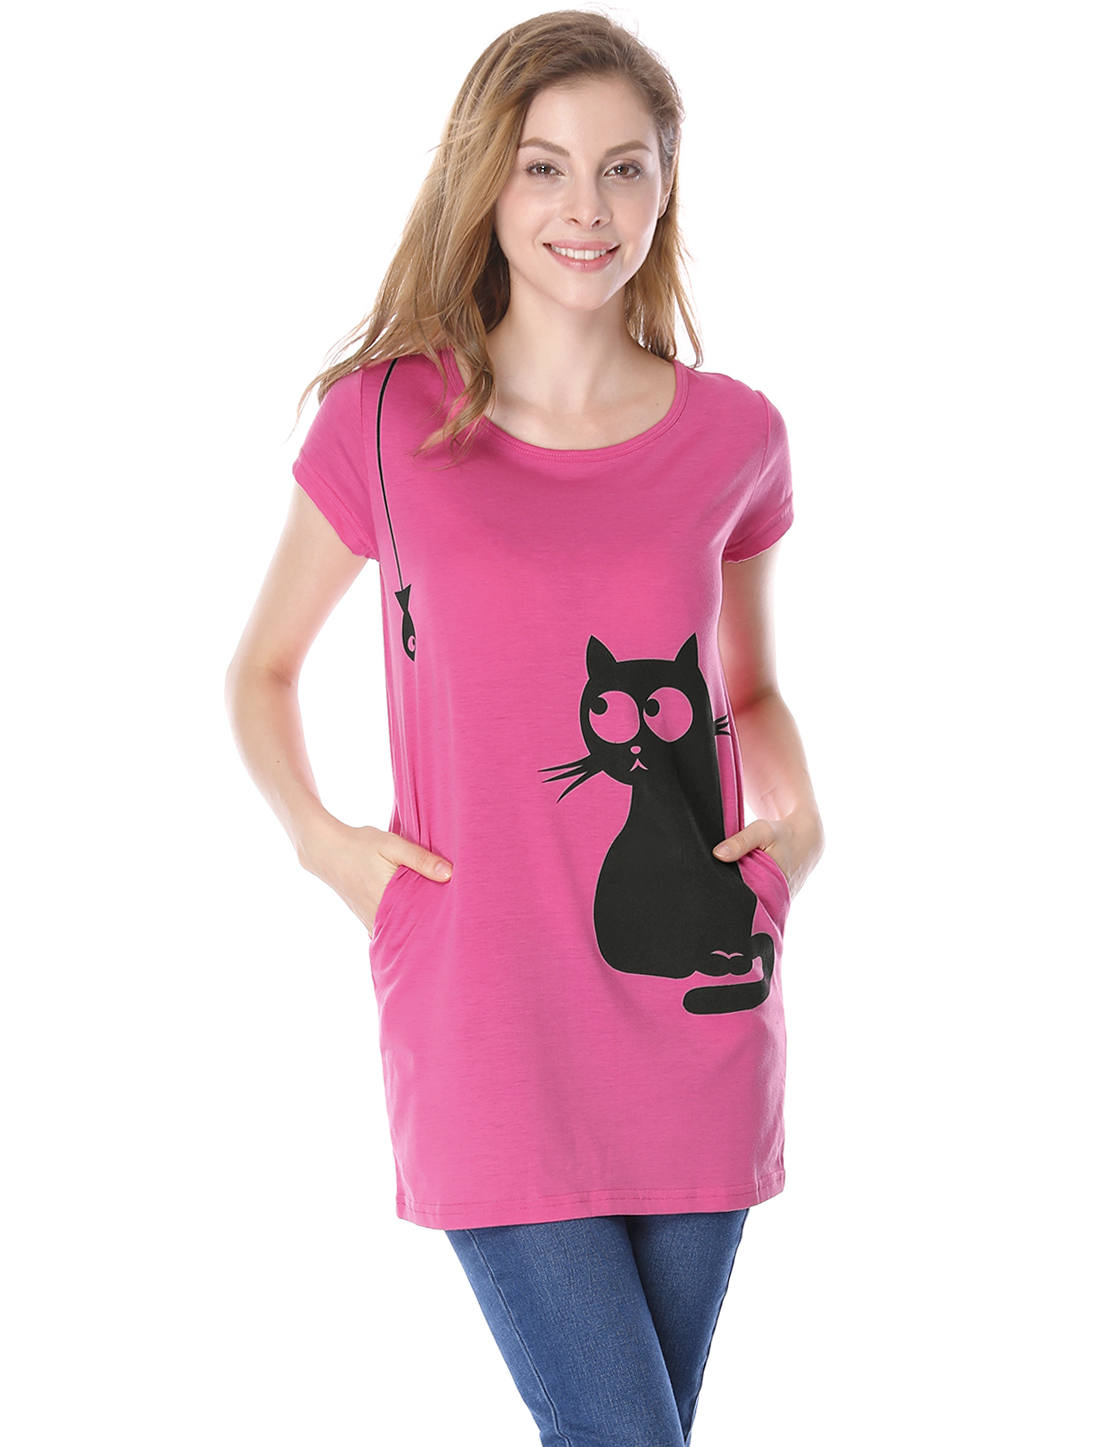 Women NEW Pockets Front Cartoon Cat Fish Print Loose Tunic Top Fuchsia M